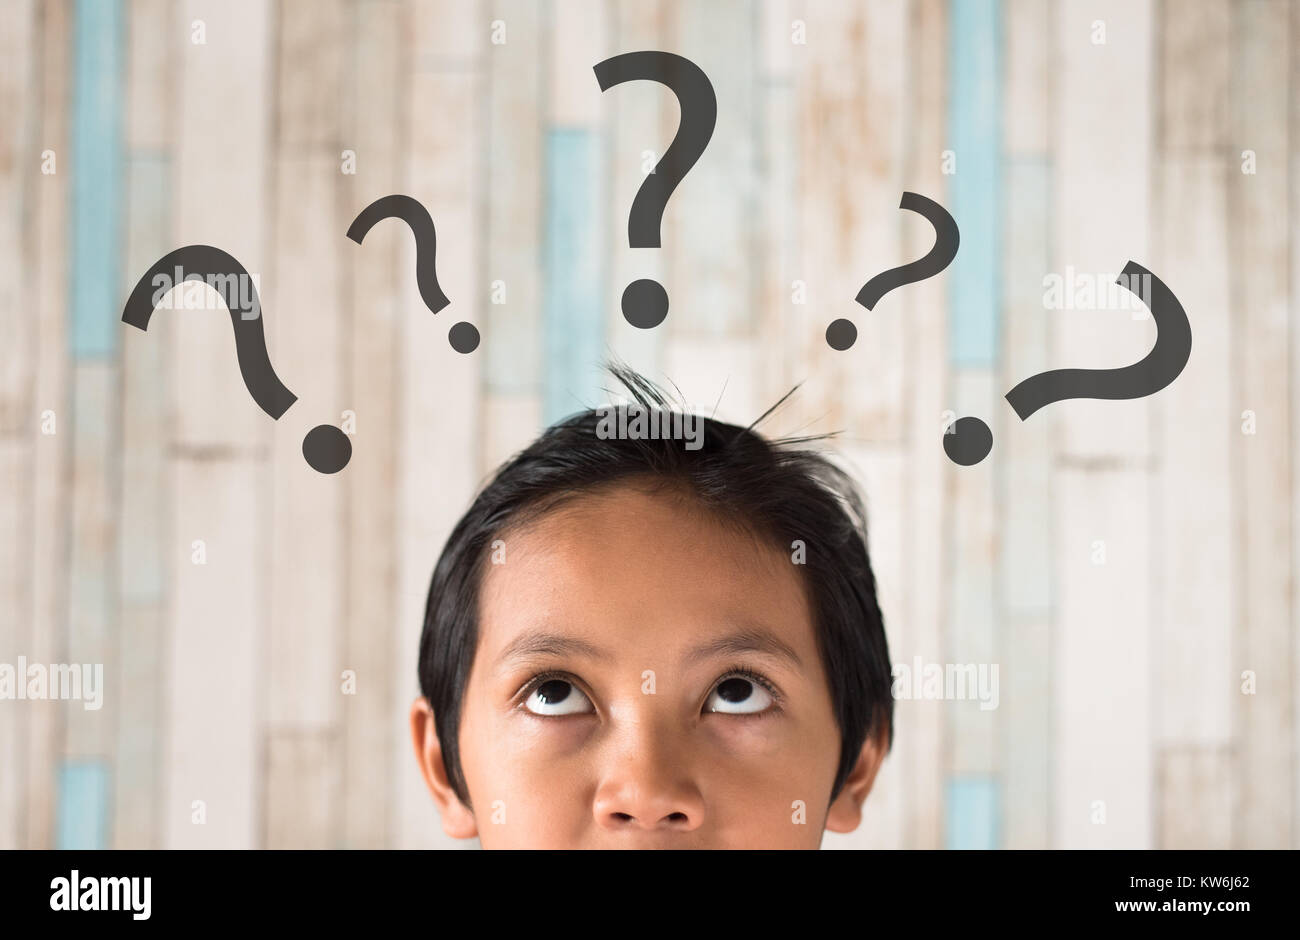 young asian boy looking to question mark. problem concept - Stock Image